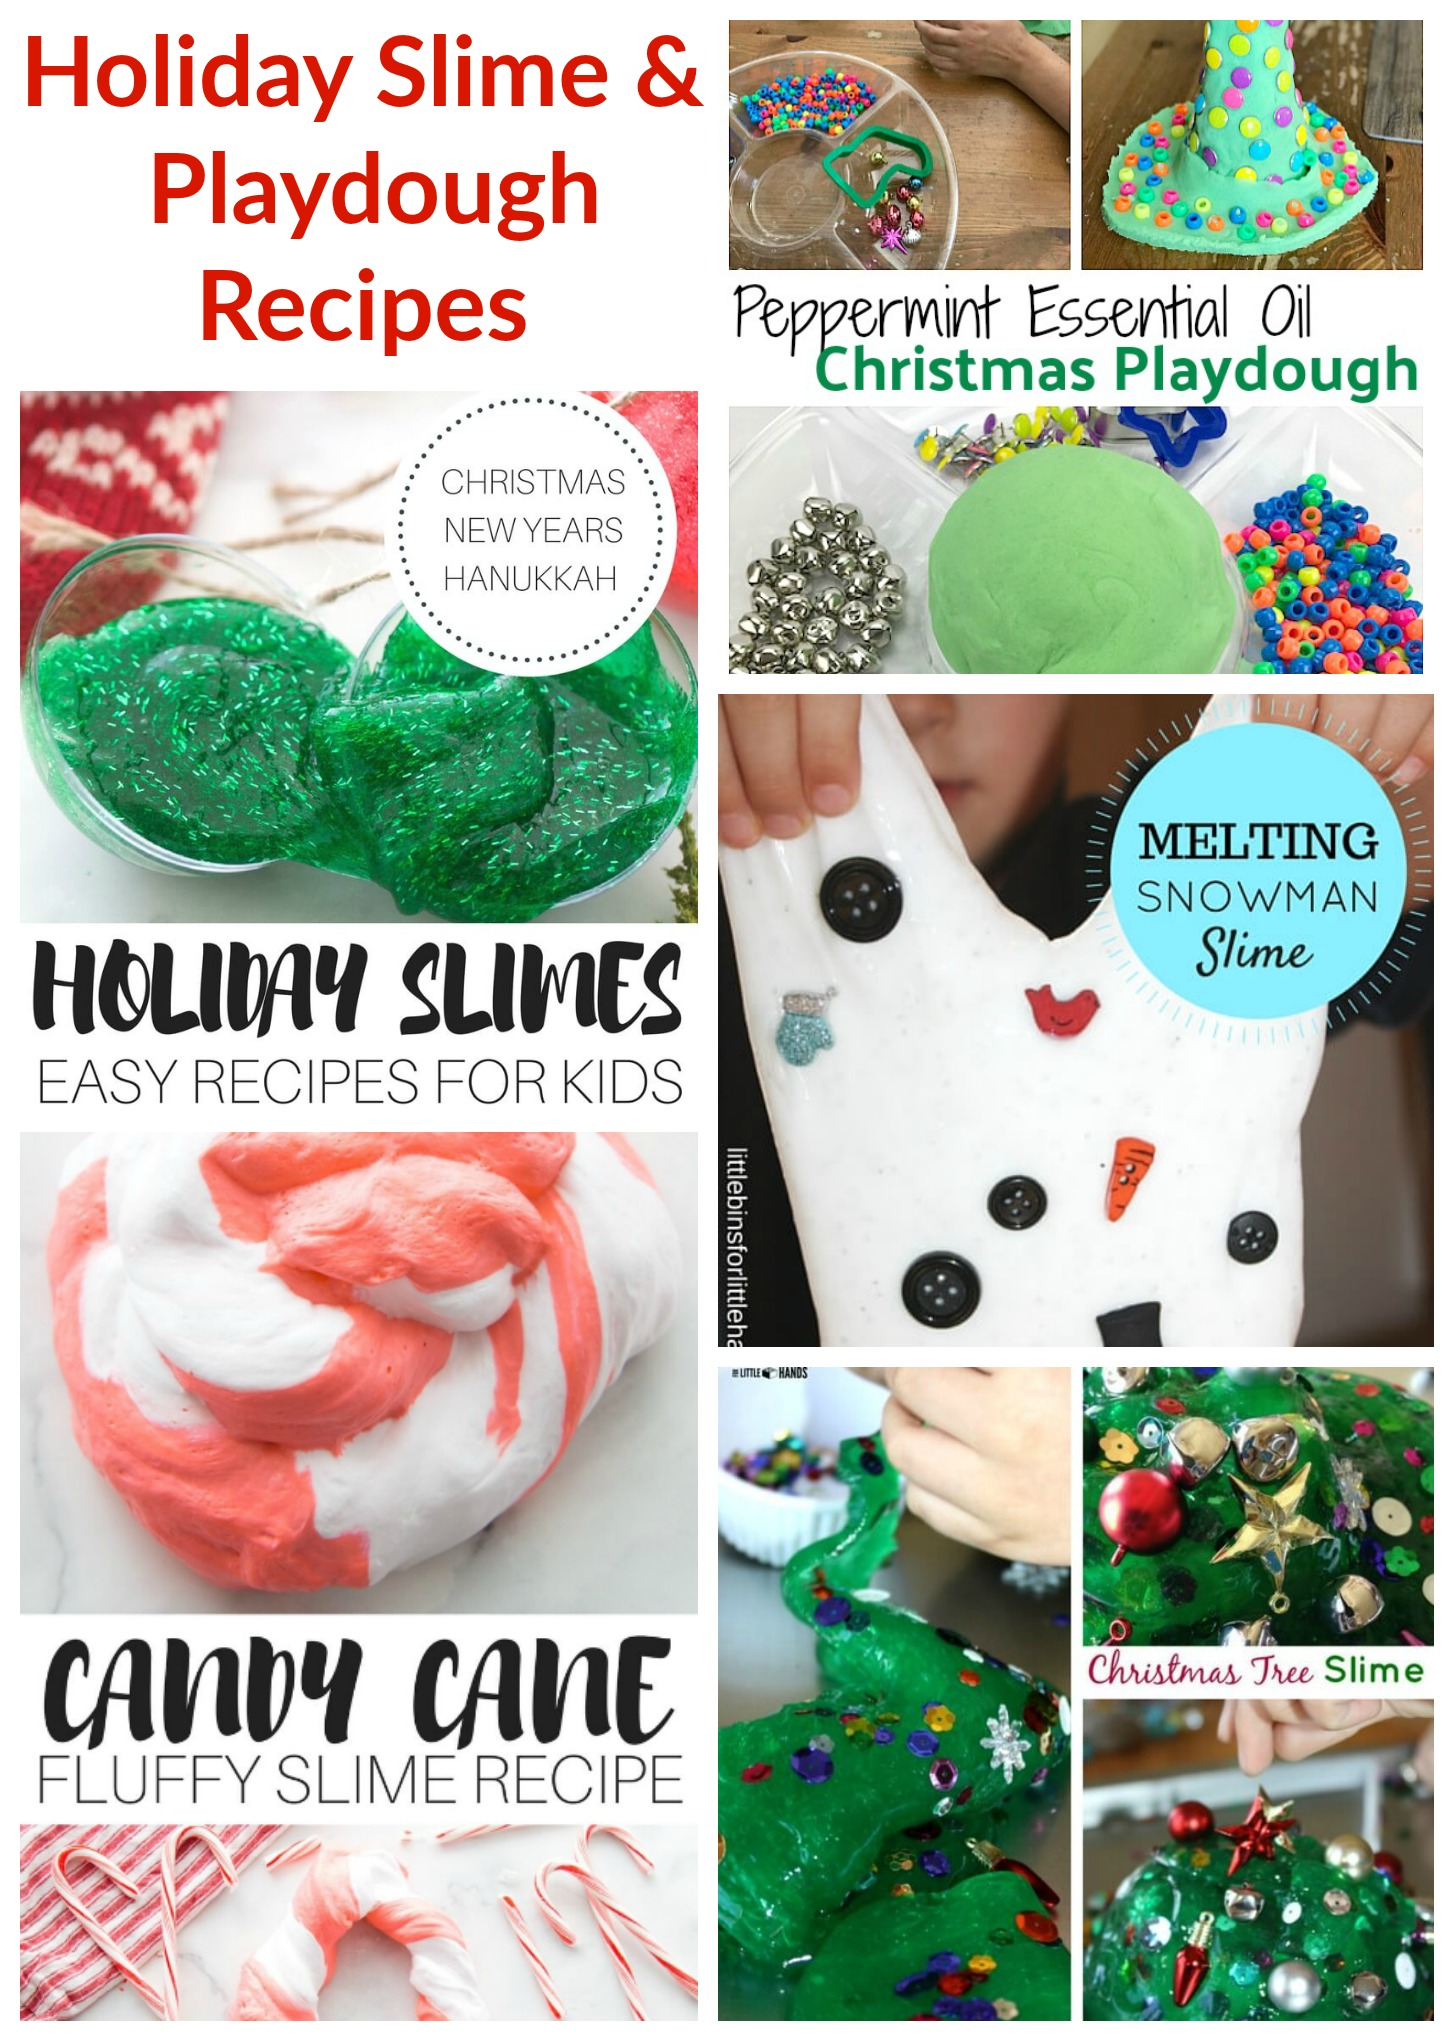 Holiday Slime and Playdough Recipes